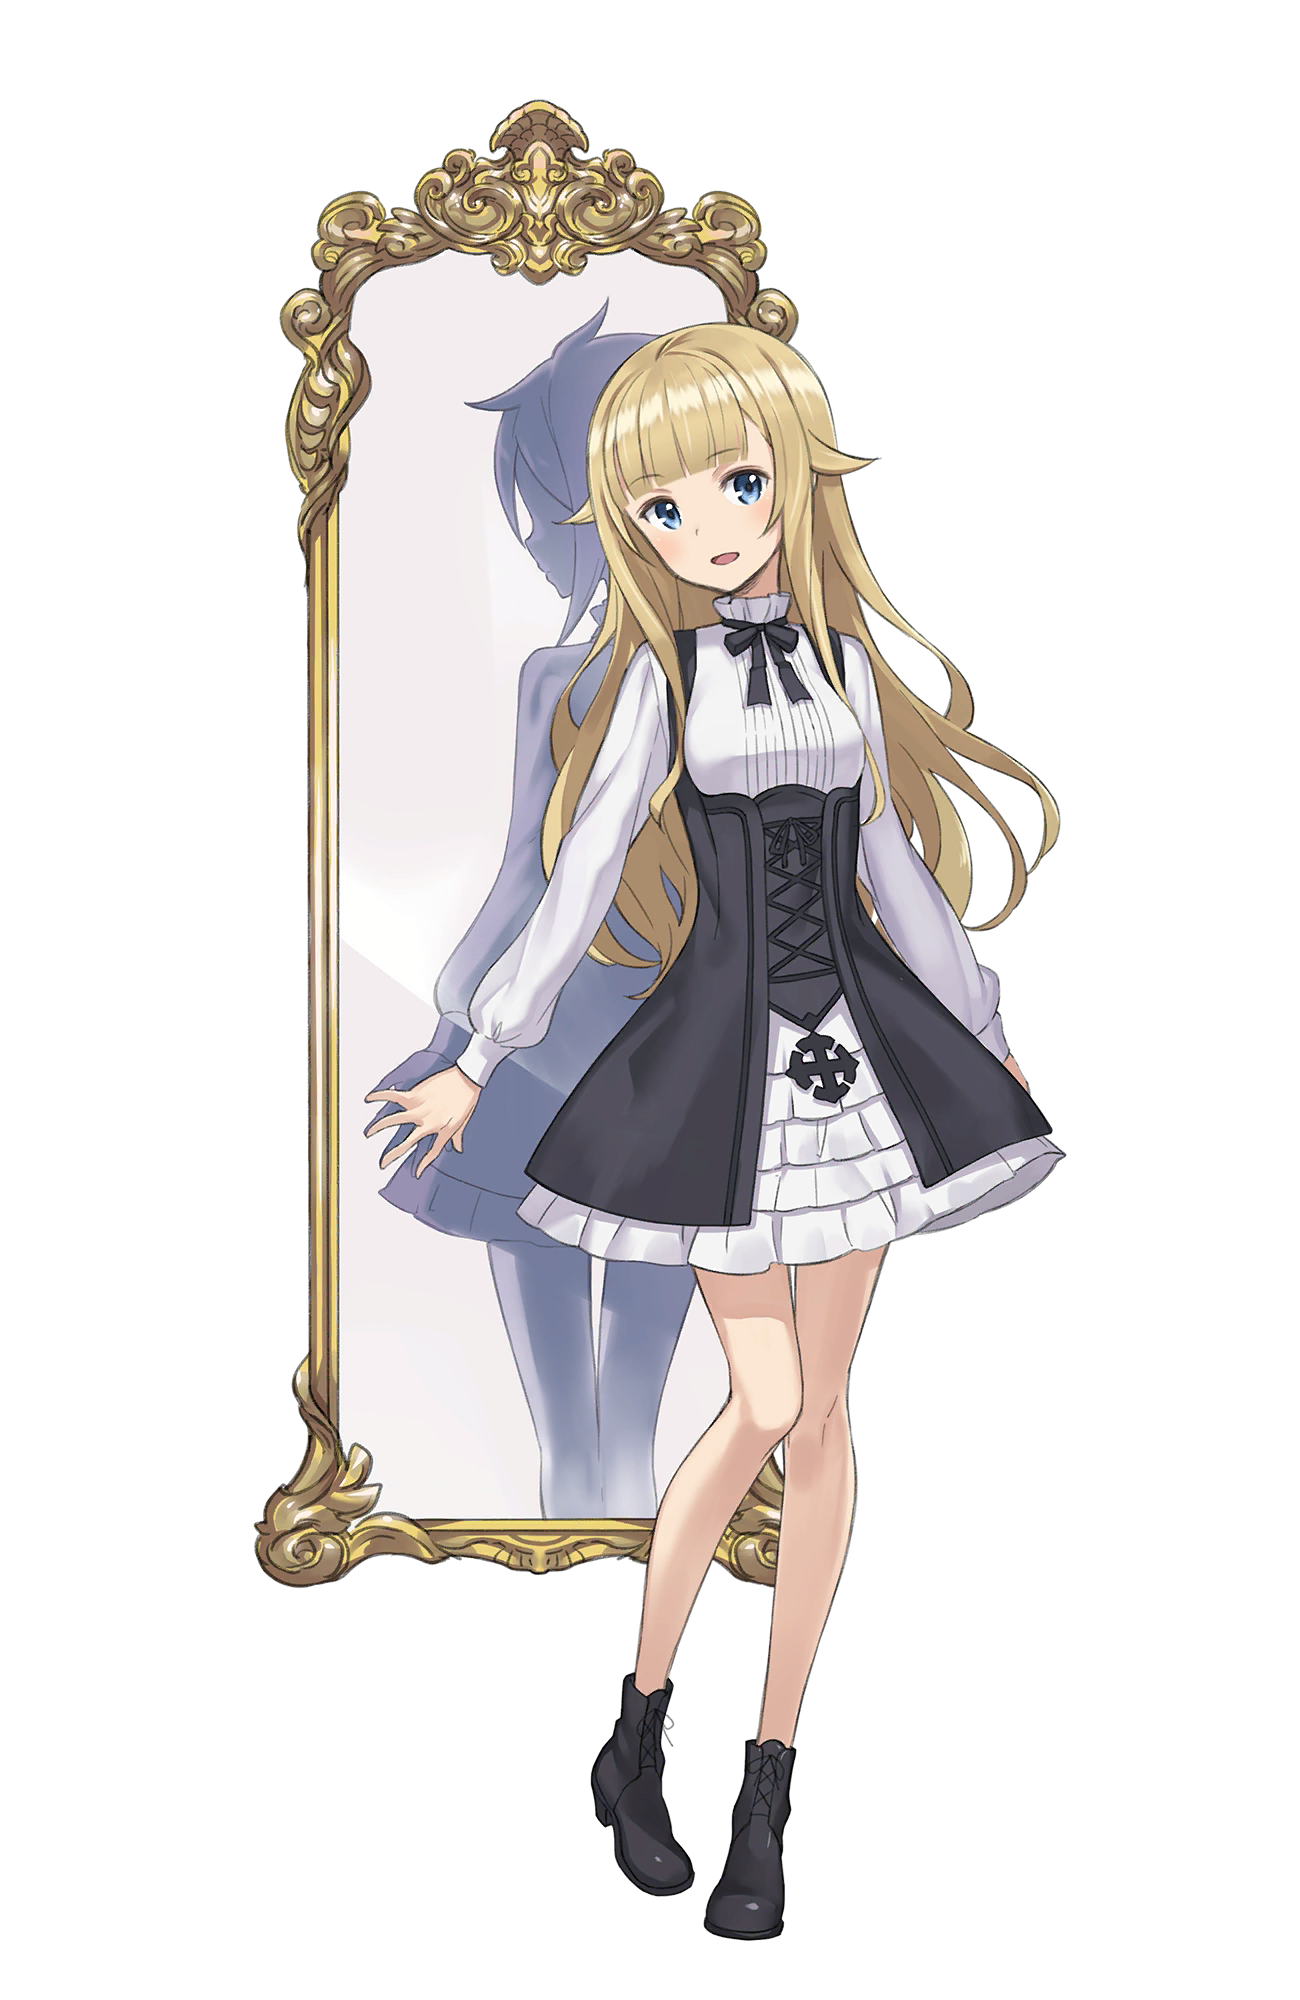 character000018_image_out_game.png